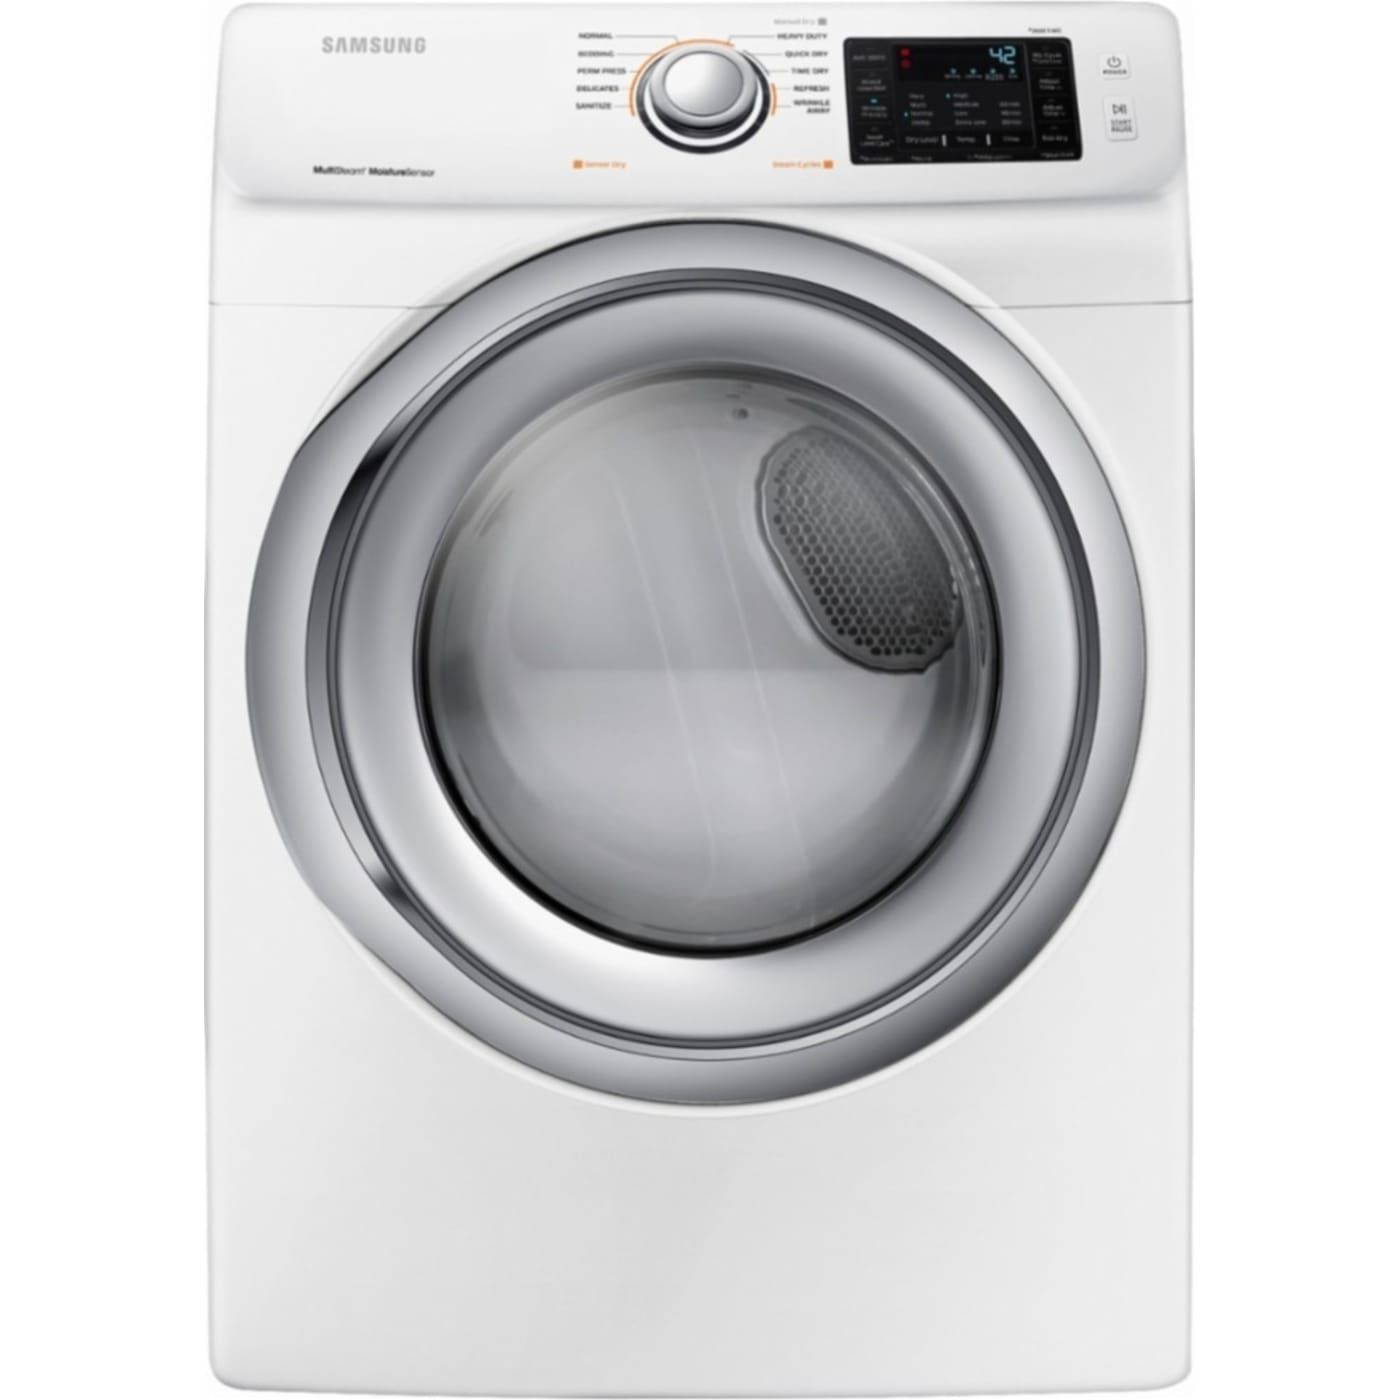 Dve45n5300w By Samsung Electric Dryers Goedekers Com Electric Dryers Samsung Dryer Gas Dryer